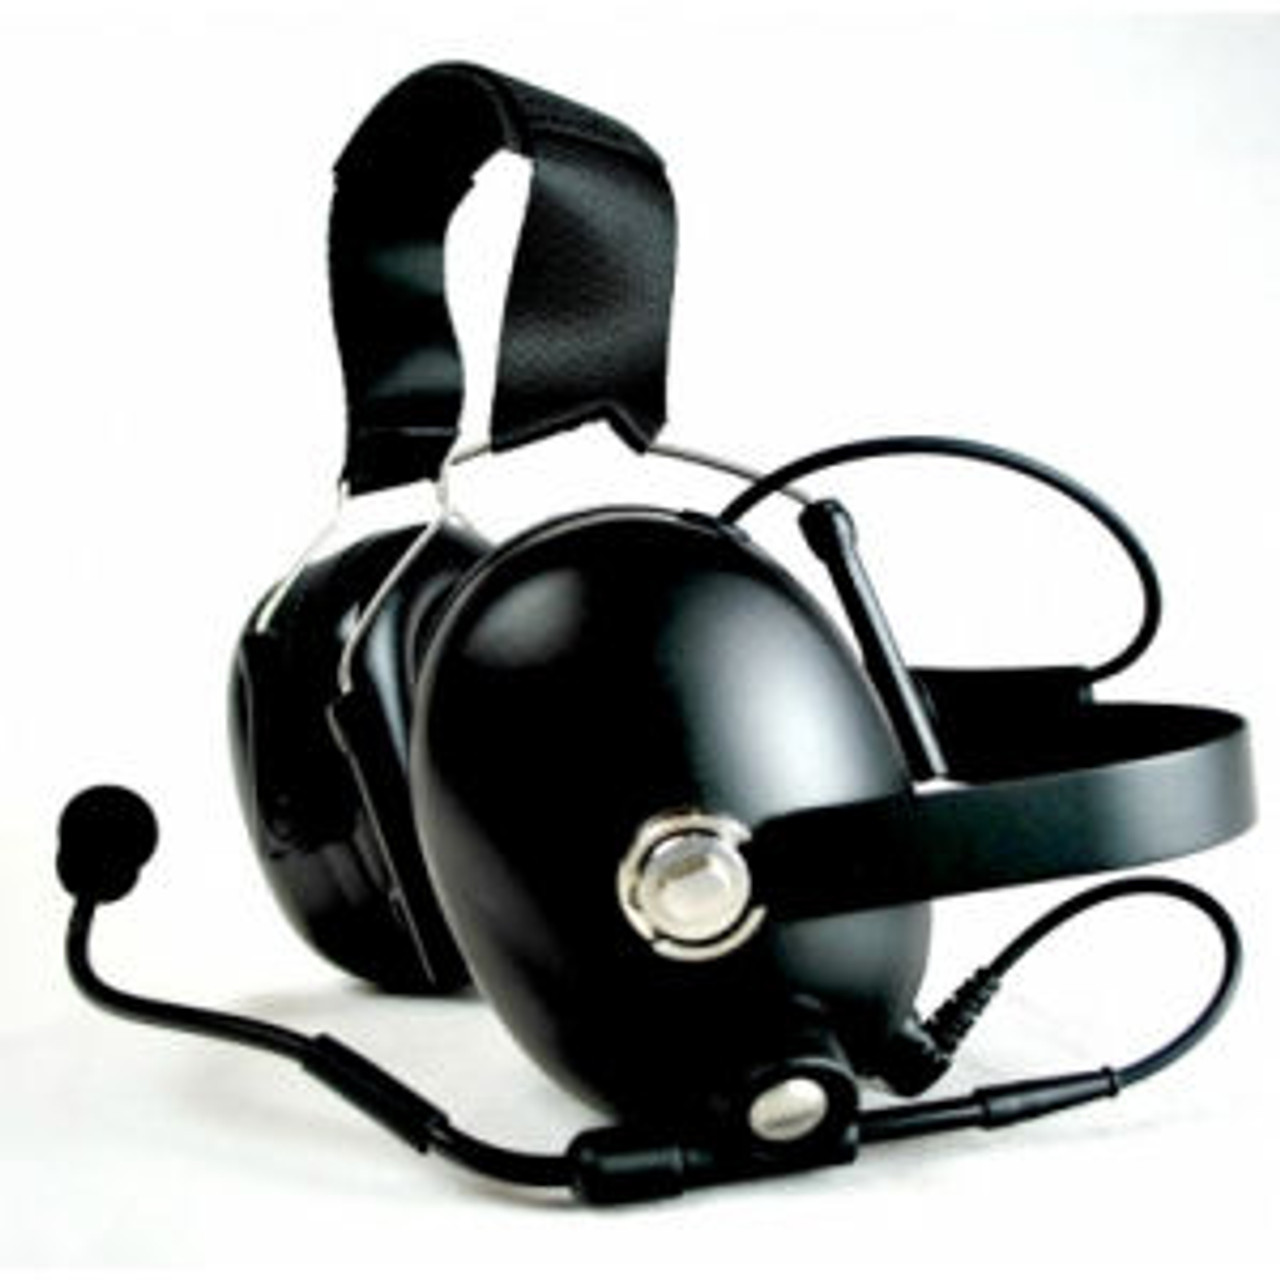 Relm RP6500 Noise Canceling Double Muff Behind The Head Headset